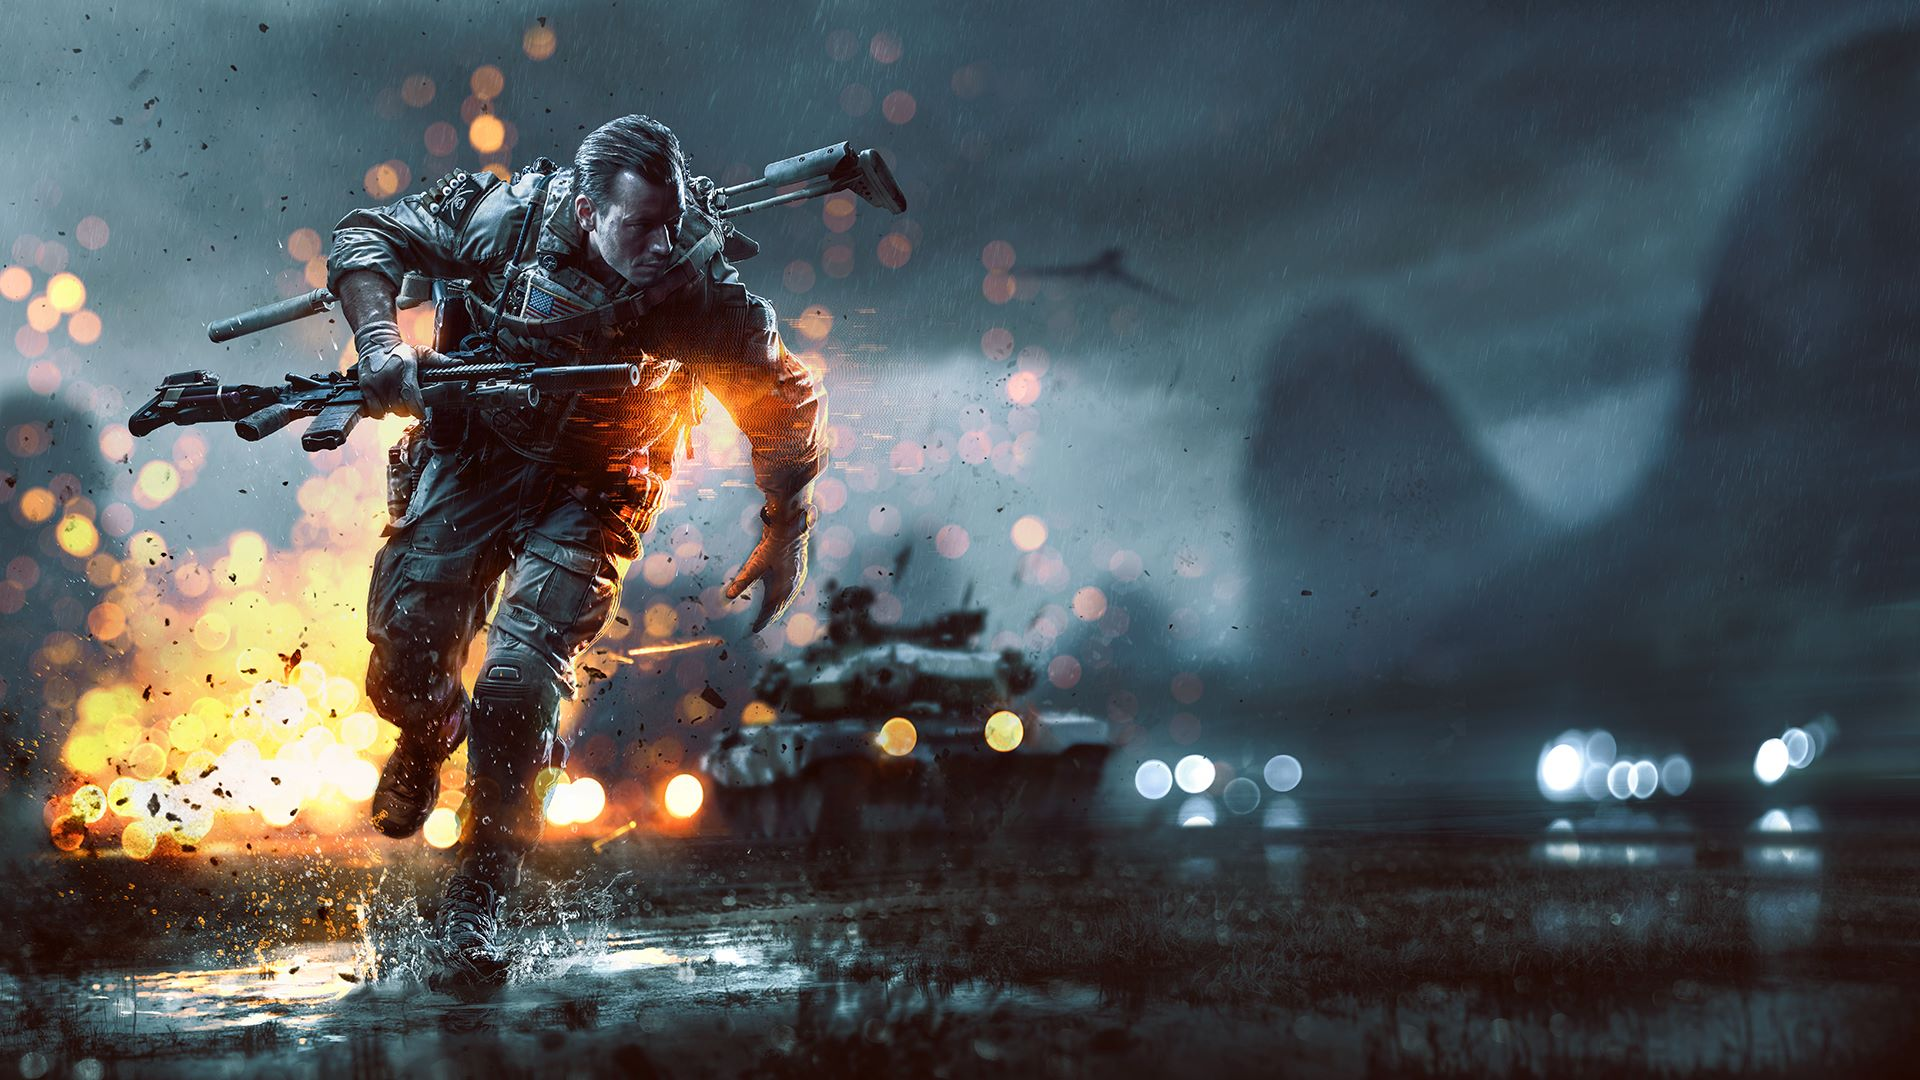 Download Wallpaper 1280x1280 Battlefield 4 Game Ea: Buy Battlefield 4™ China Rising